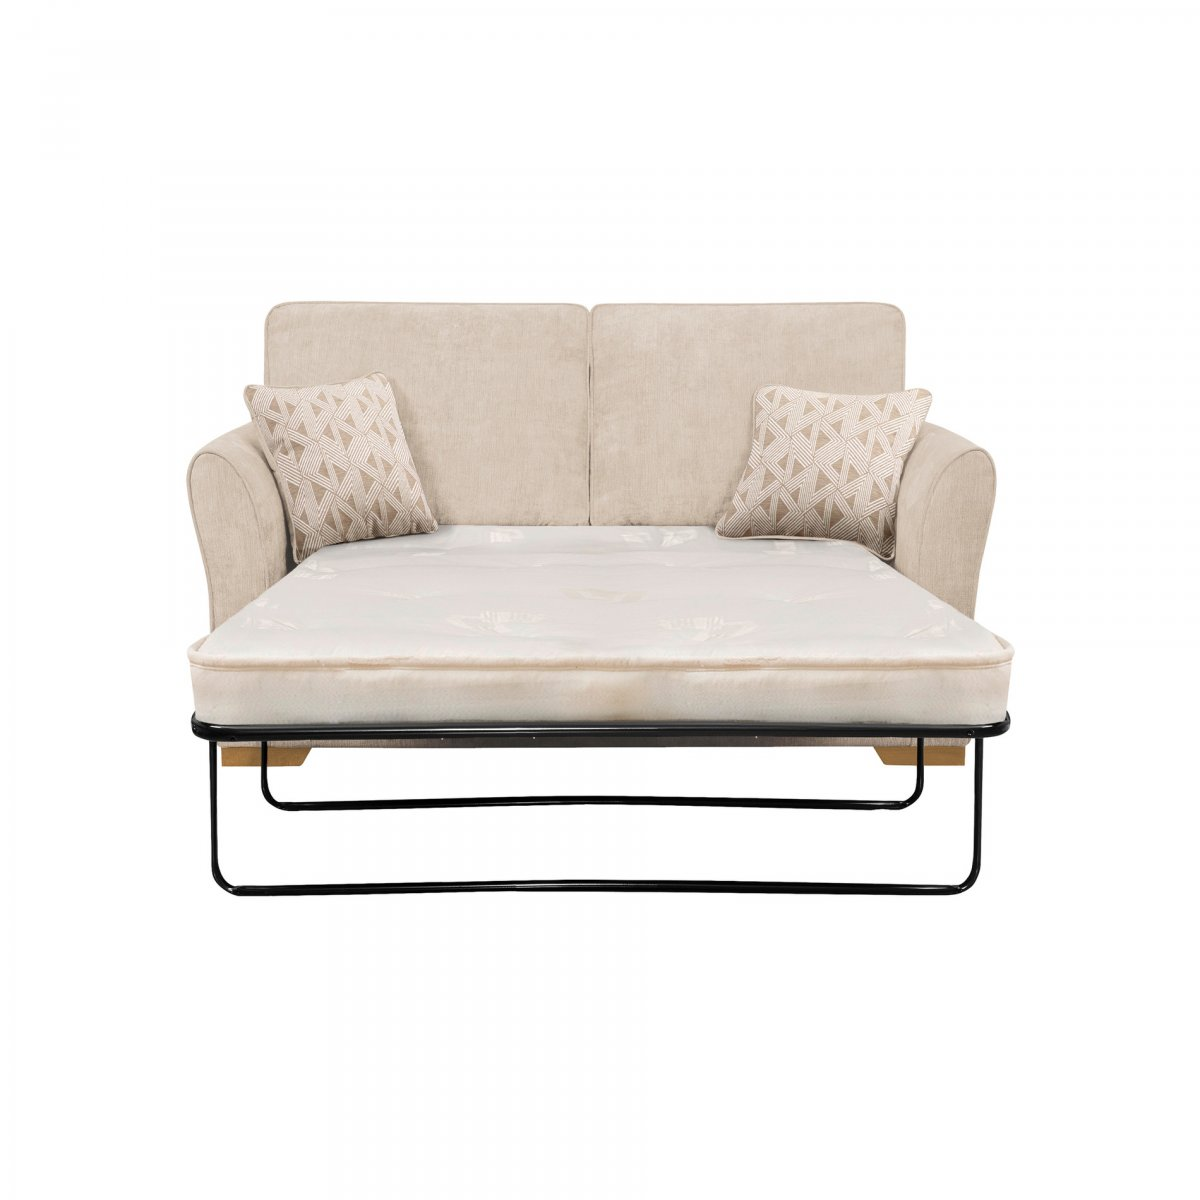 Jasmine 2 seater sofa bed with deluxe mattress in cosmo linen for Sofa bed 180cm